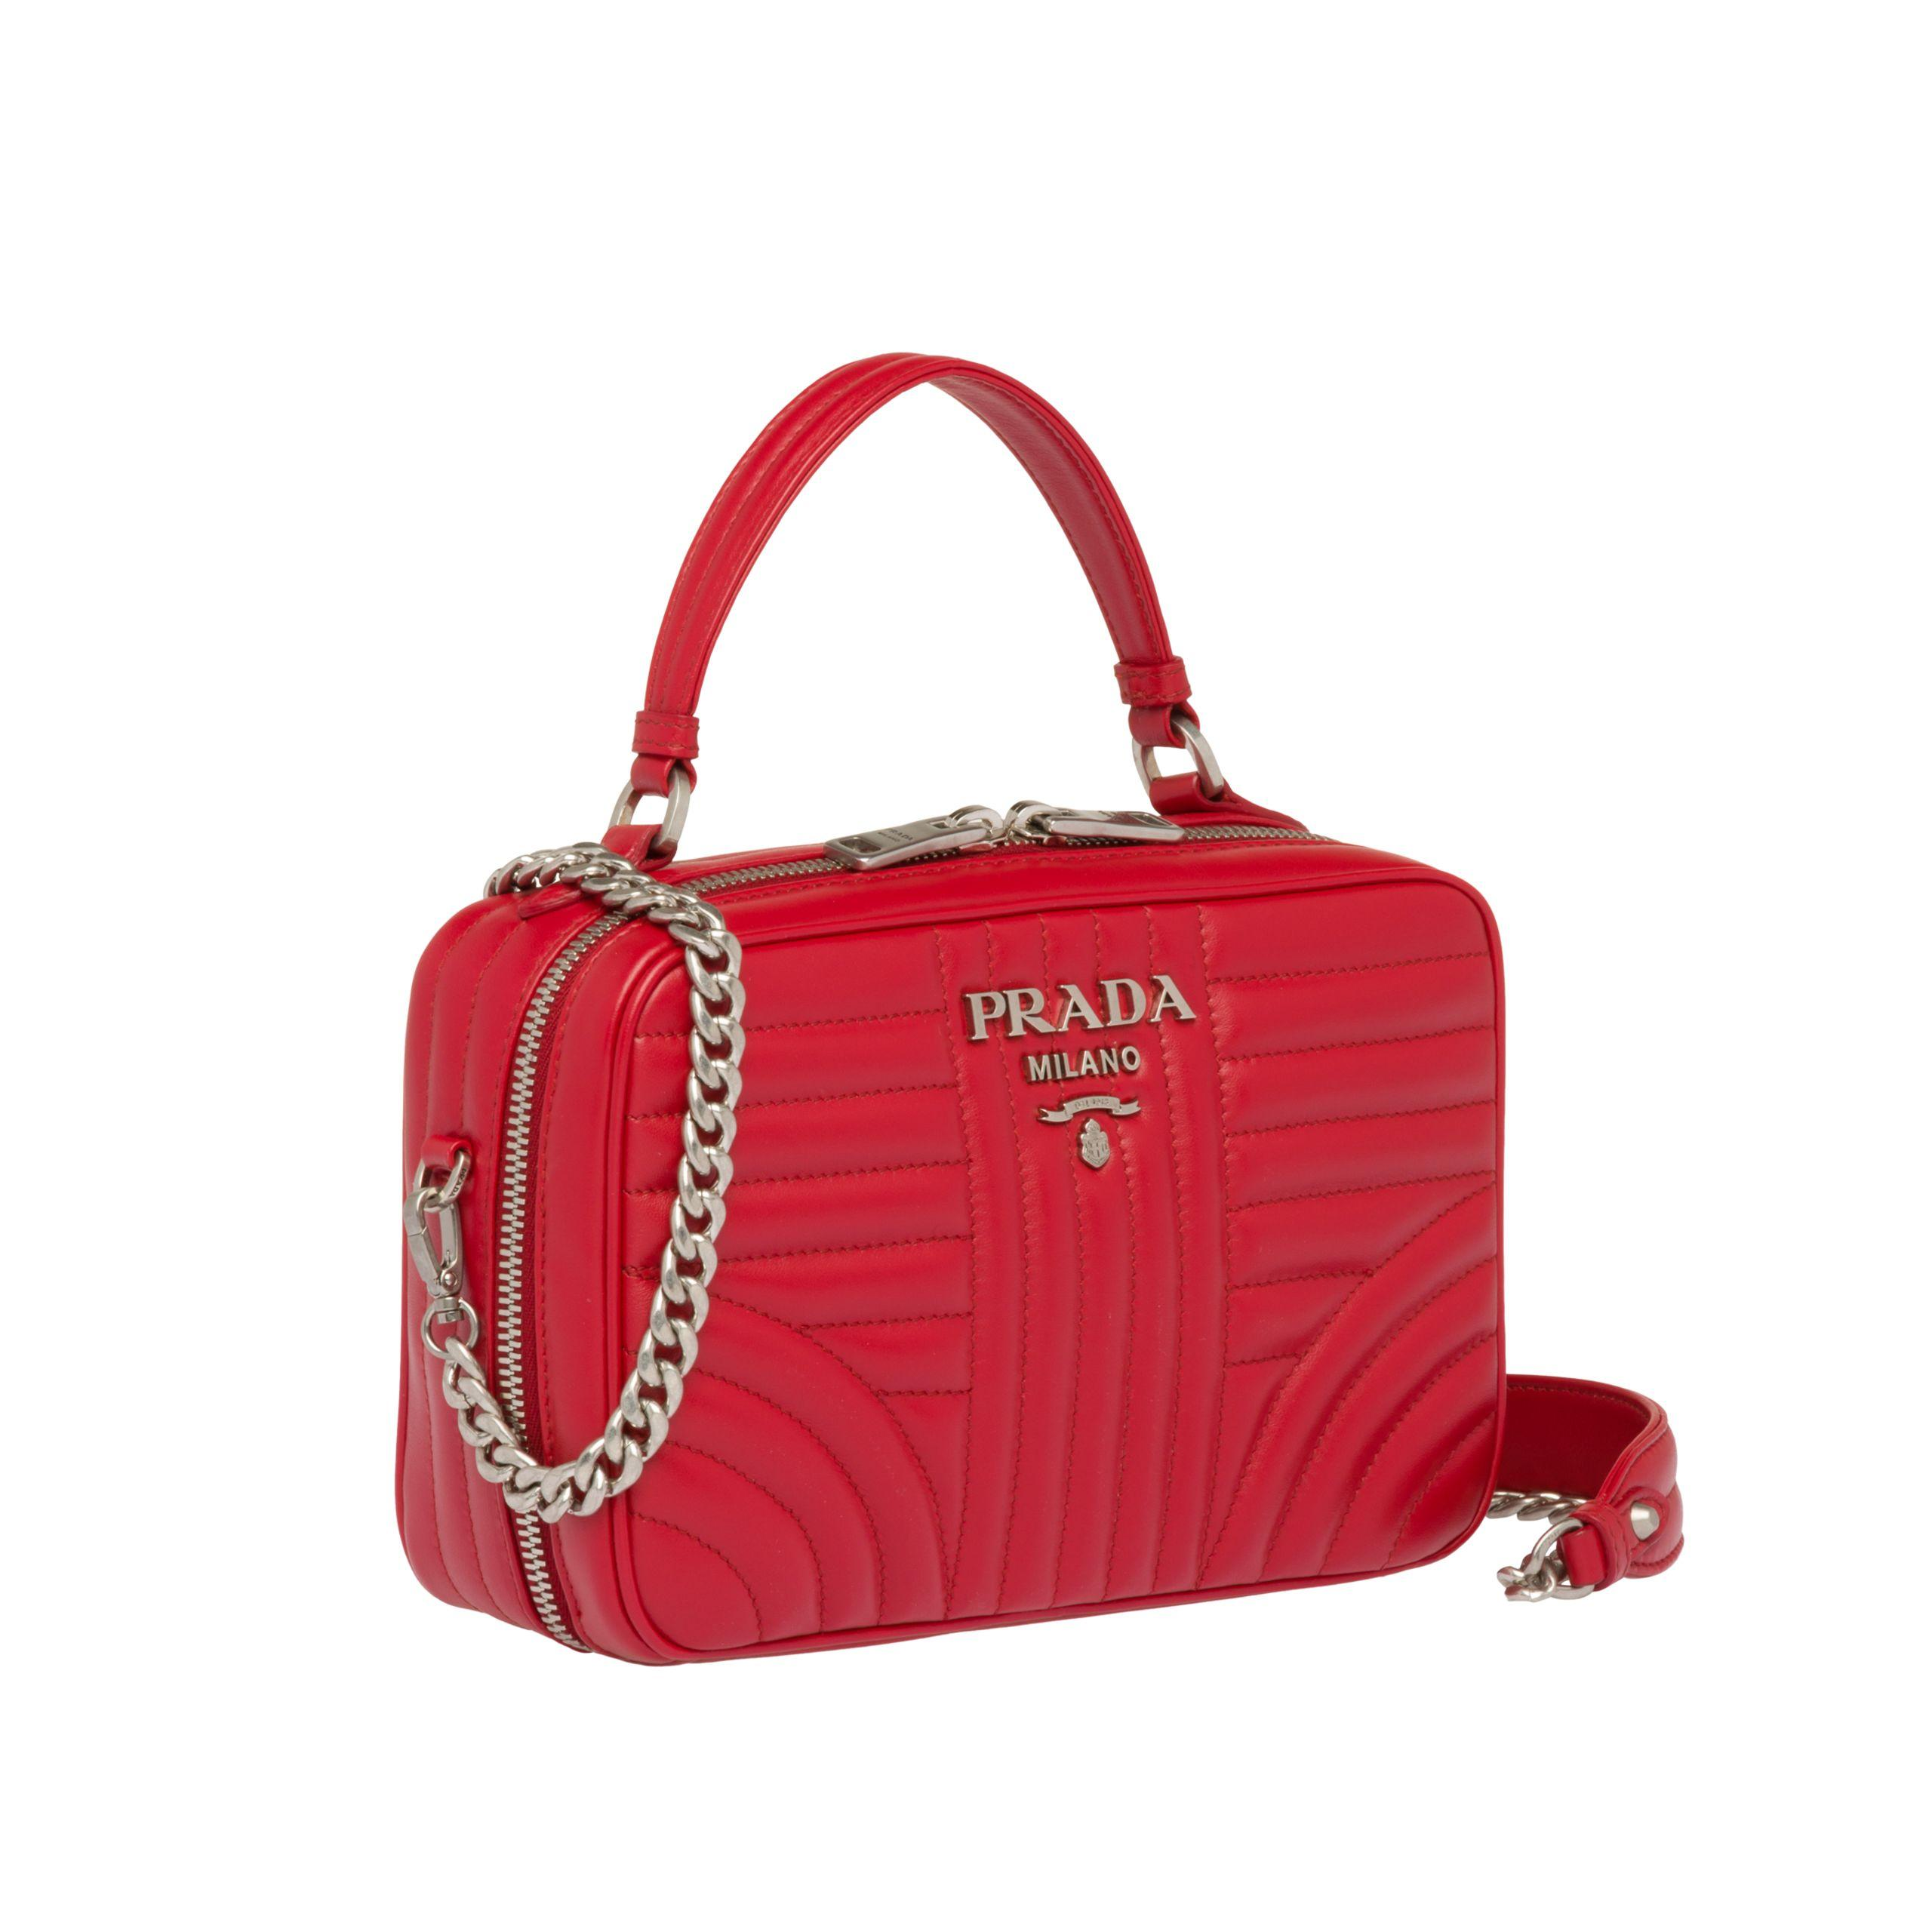 172f7abaca28 Lyst - Prada Diagramme Leather Bag in Red